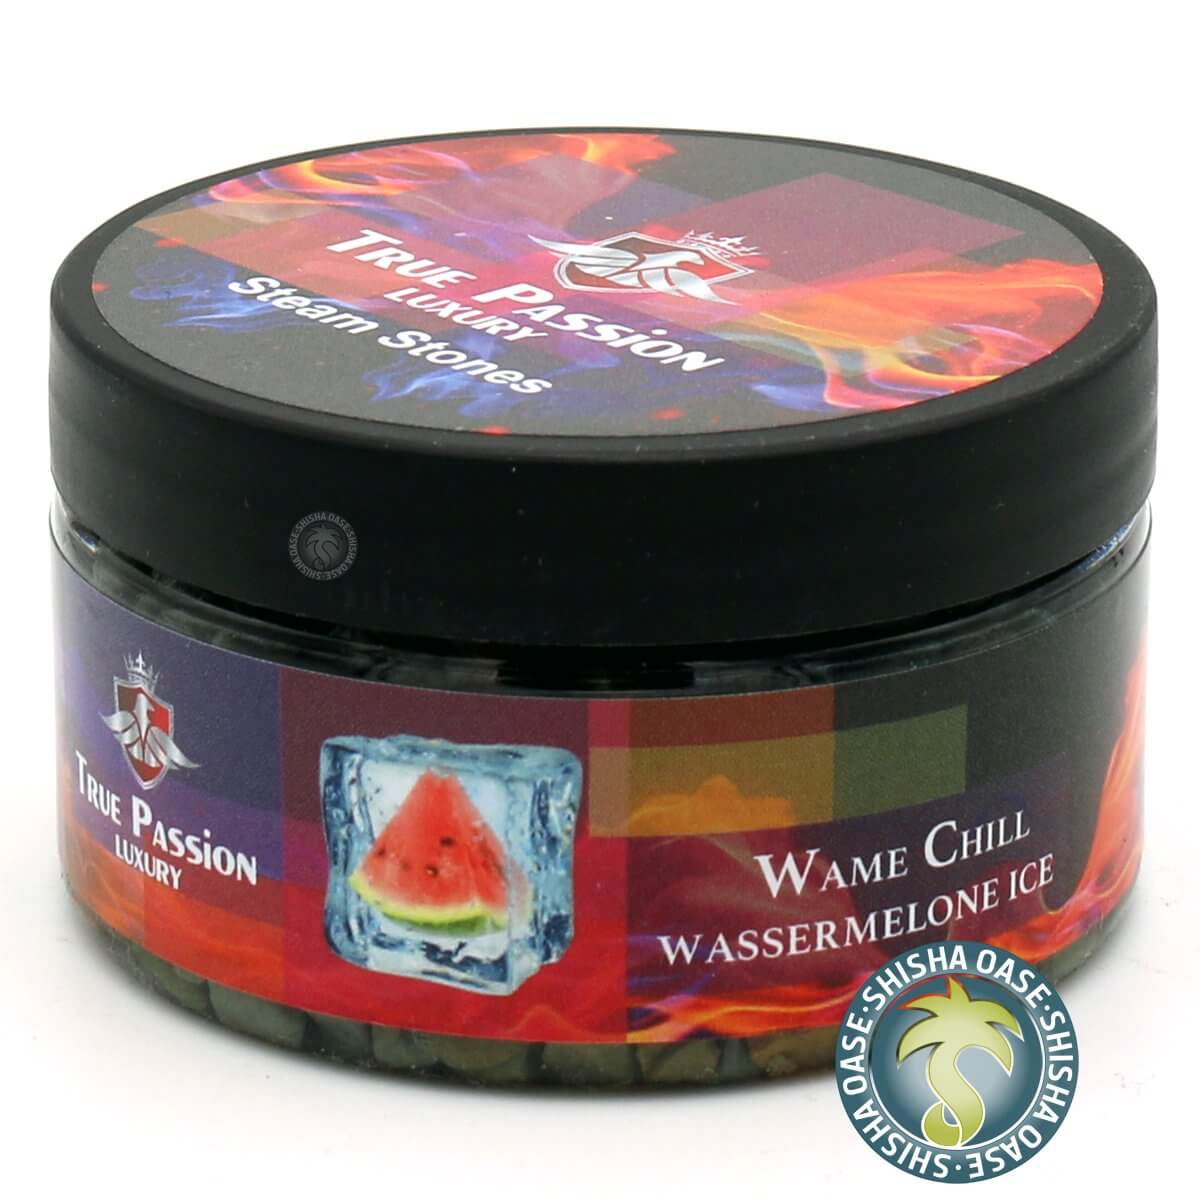 True Passion Dampfsteine 120g | WaMe Chill